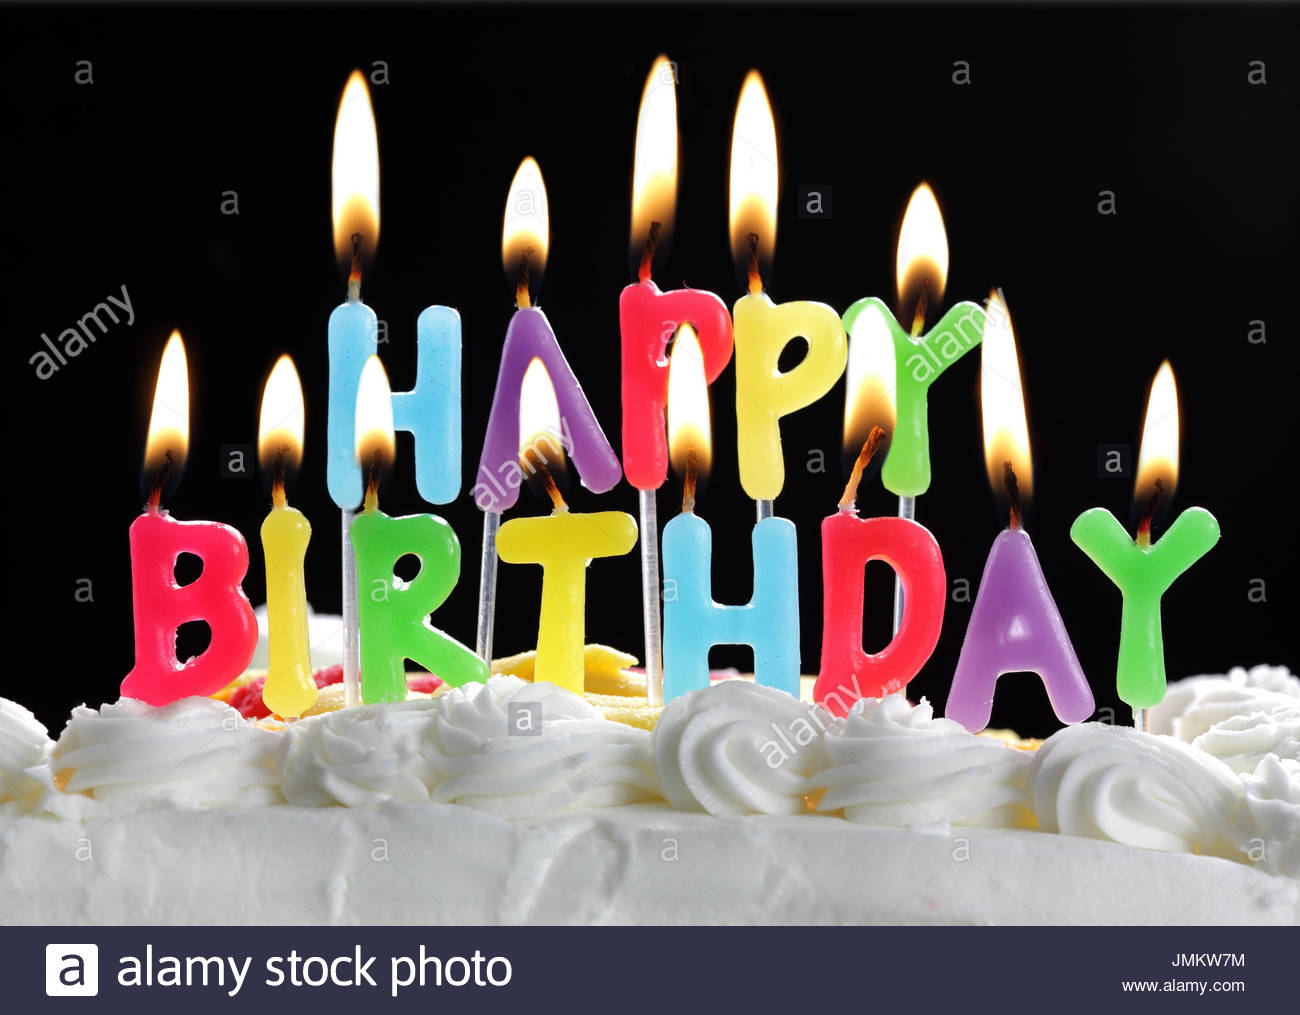 picture of birthday candles burning ; colorful-happy-birthday-candles-burning-on-a-cake-JMKW7M